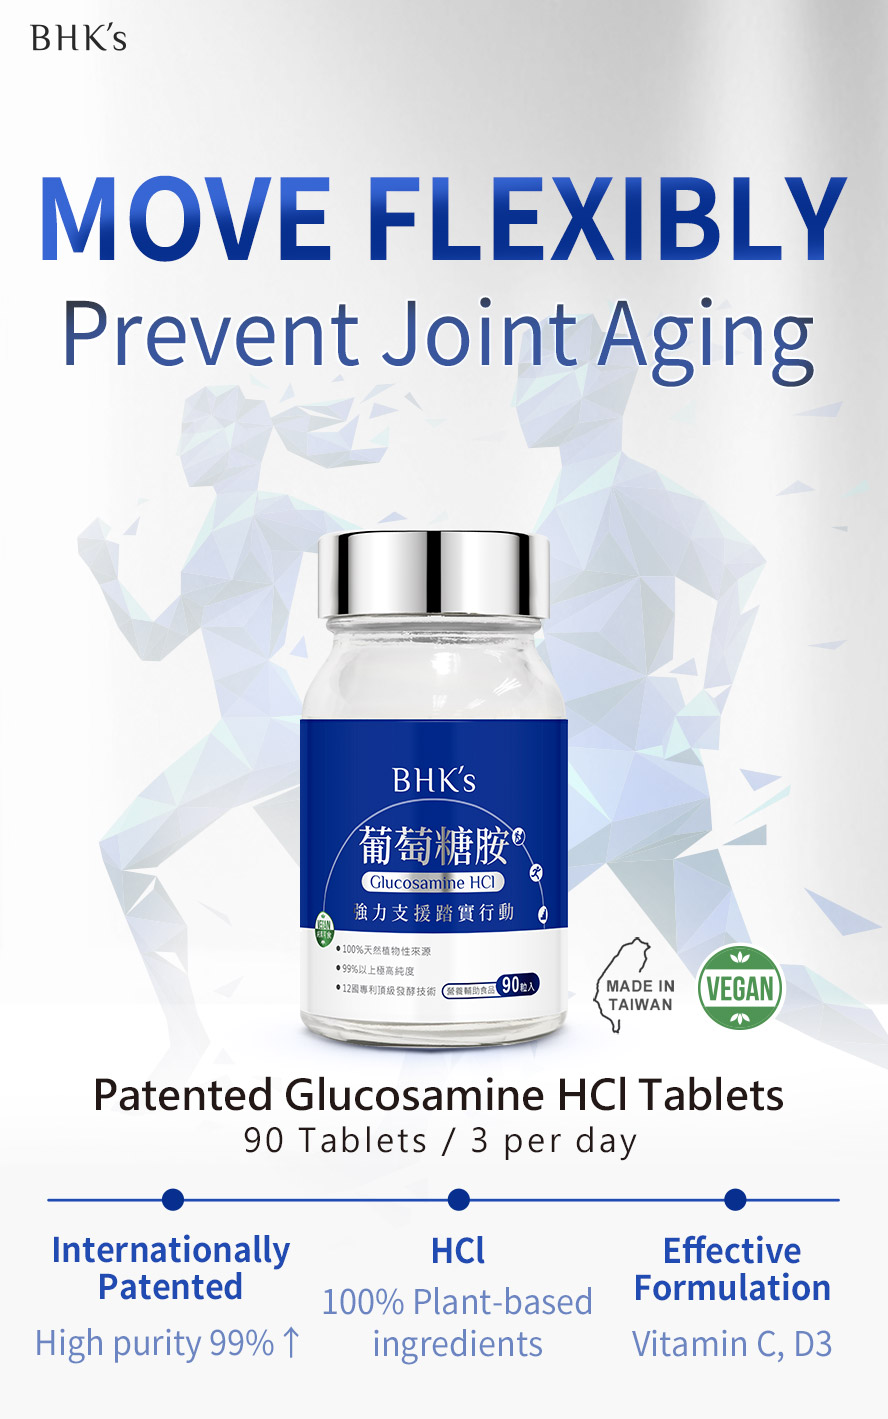 BHK's Glucosamine help provide pain relief and prevent further joint damage.